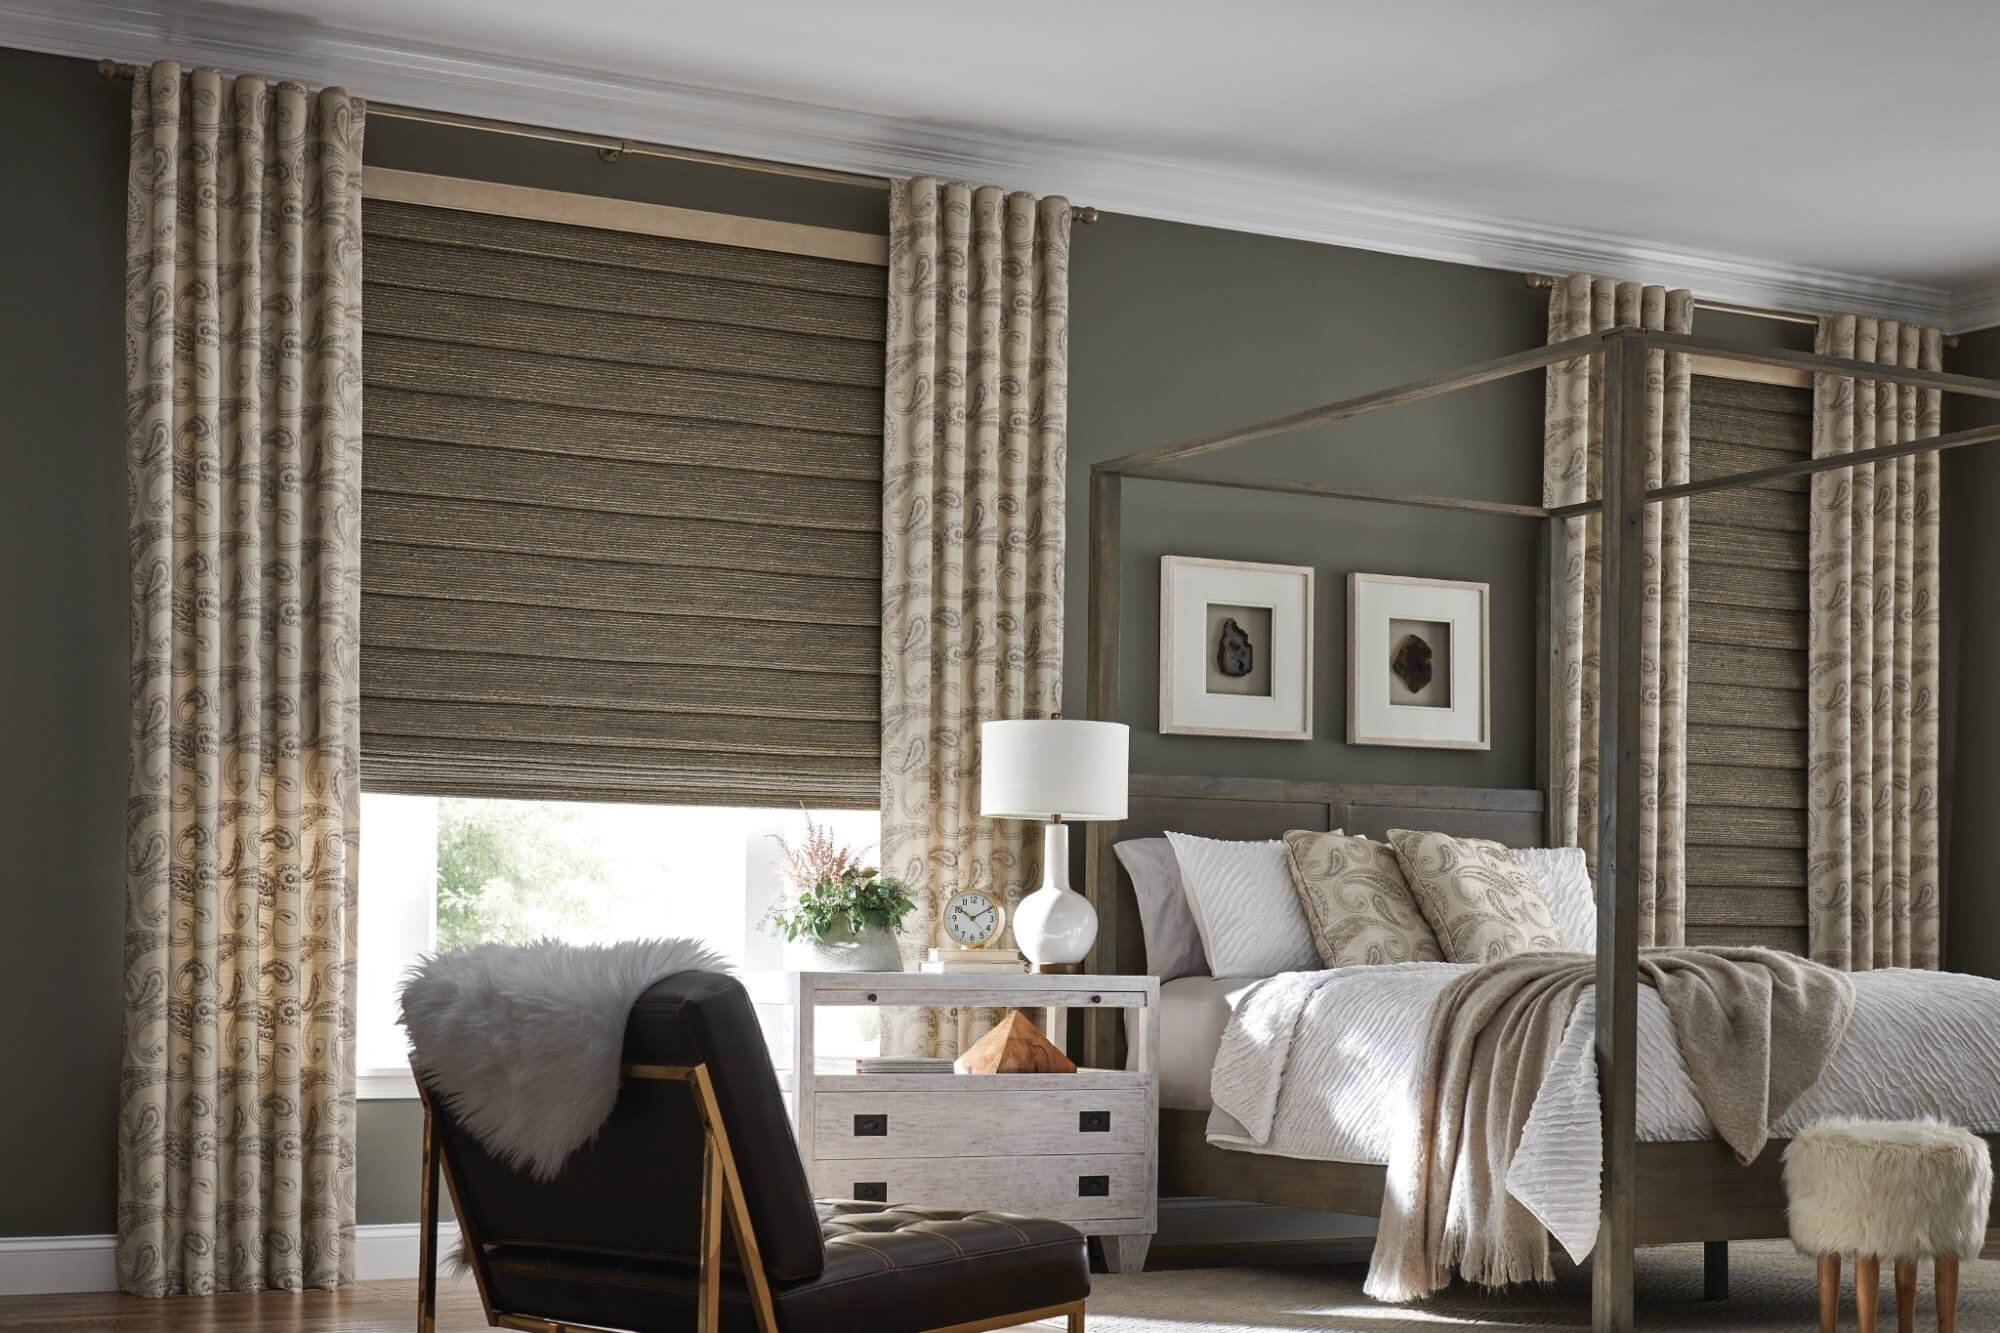 Draperies and curtains can be added on top of other window treatments adding another design element to the room as well another layer of insulation.